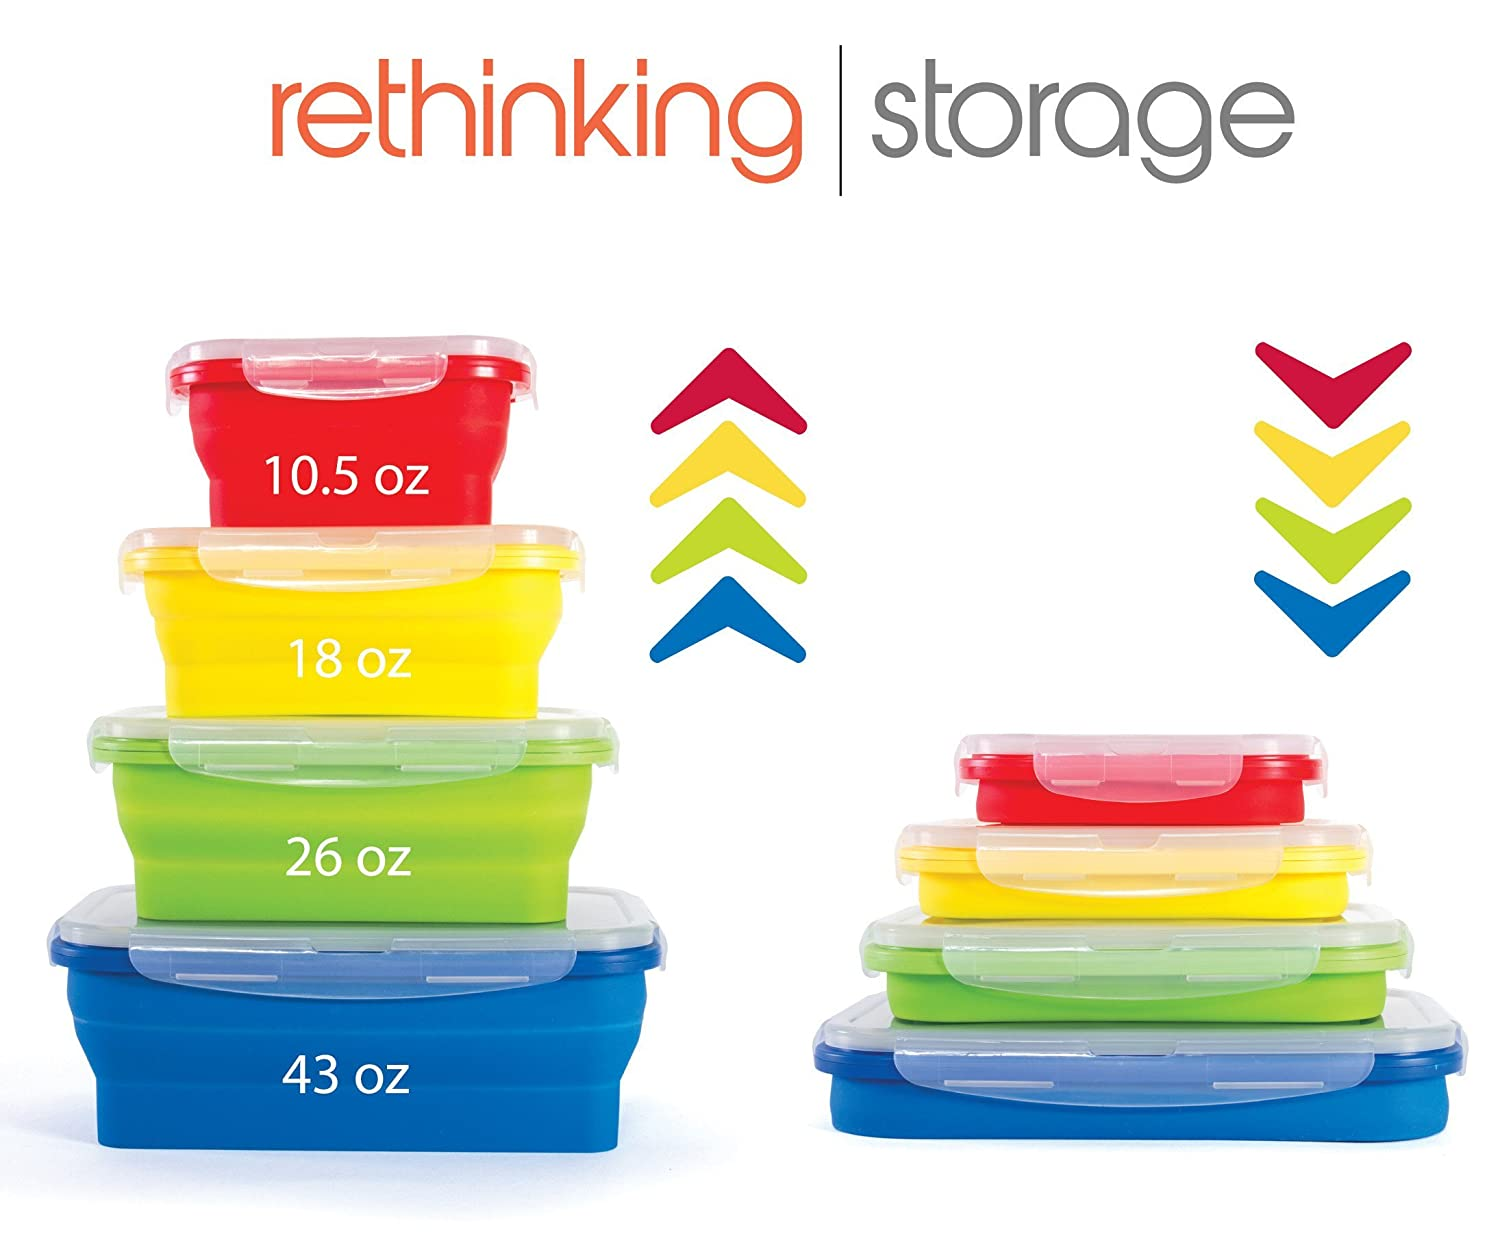 Thin bins collapsible containers amazon lightning deal afternoon